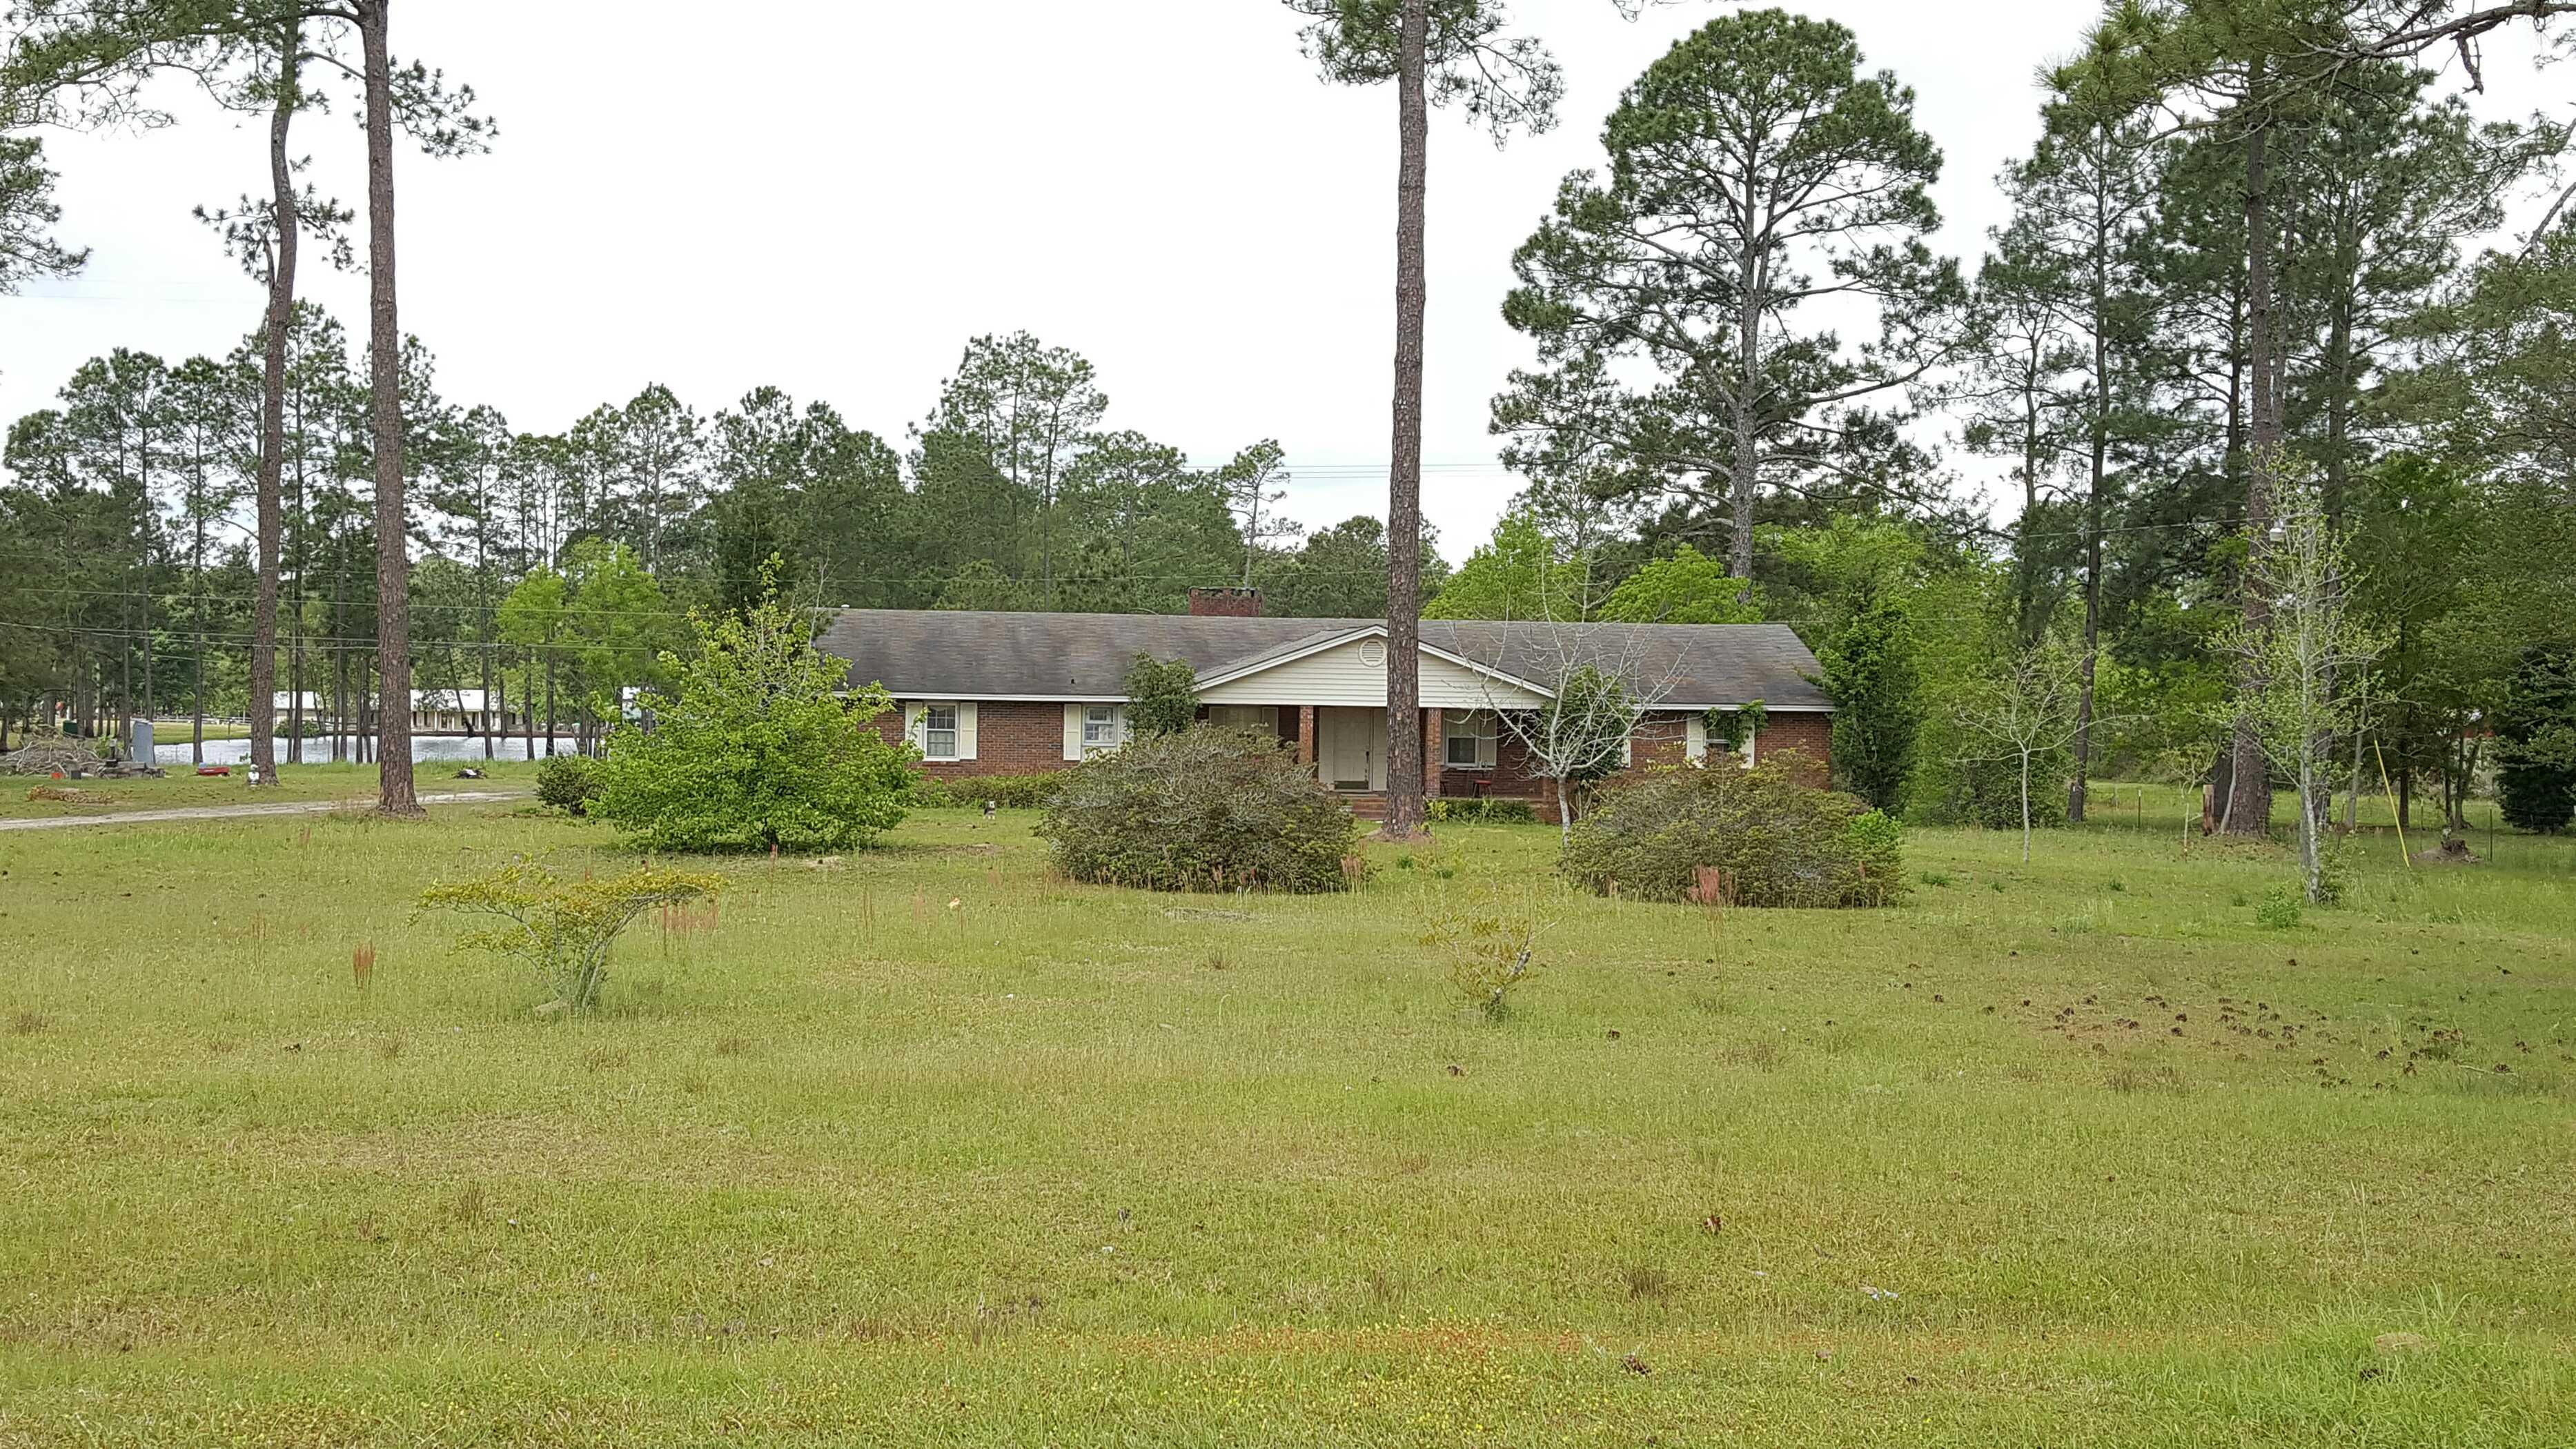 206 Tree Farm Rd, Moultrie, GA 31768